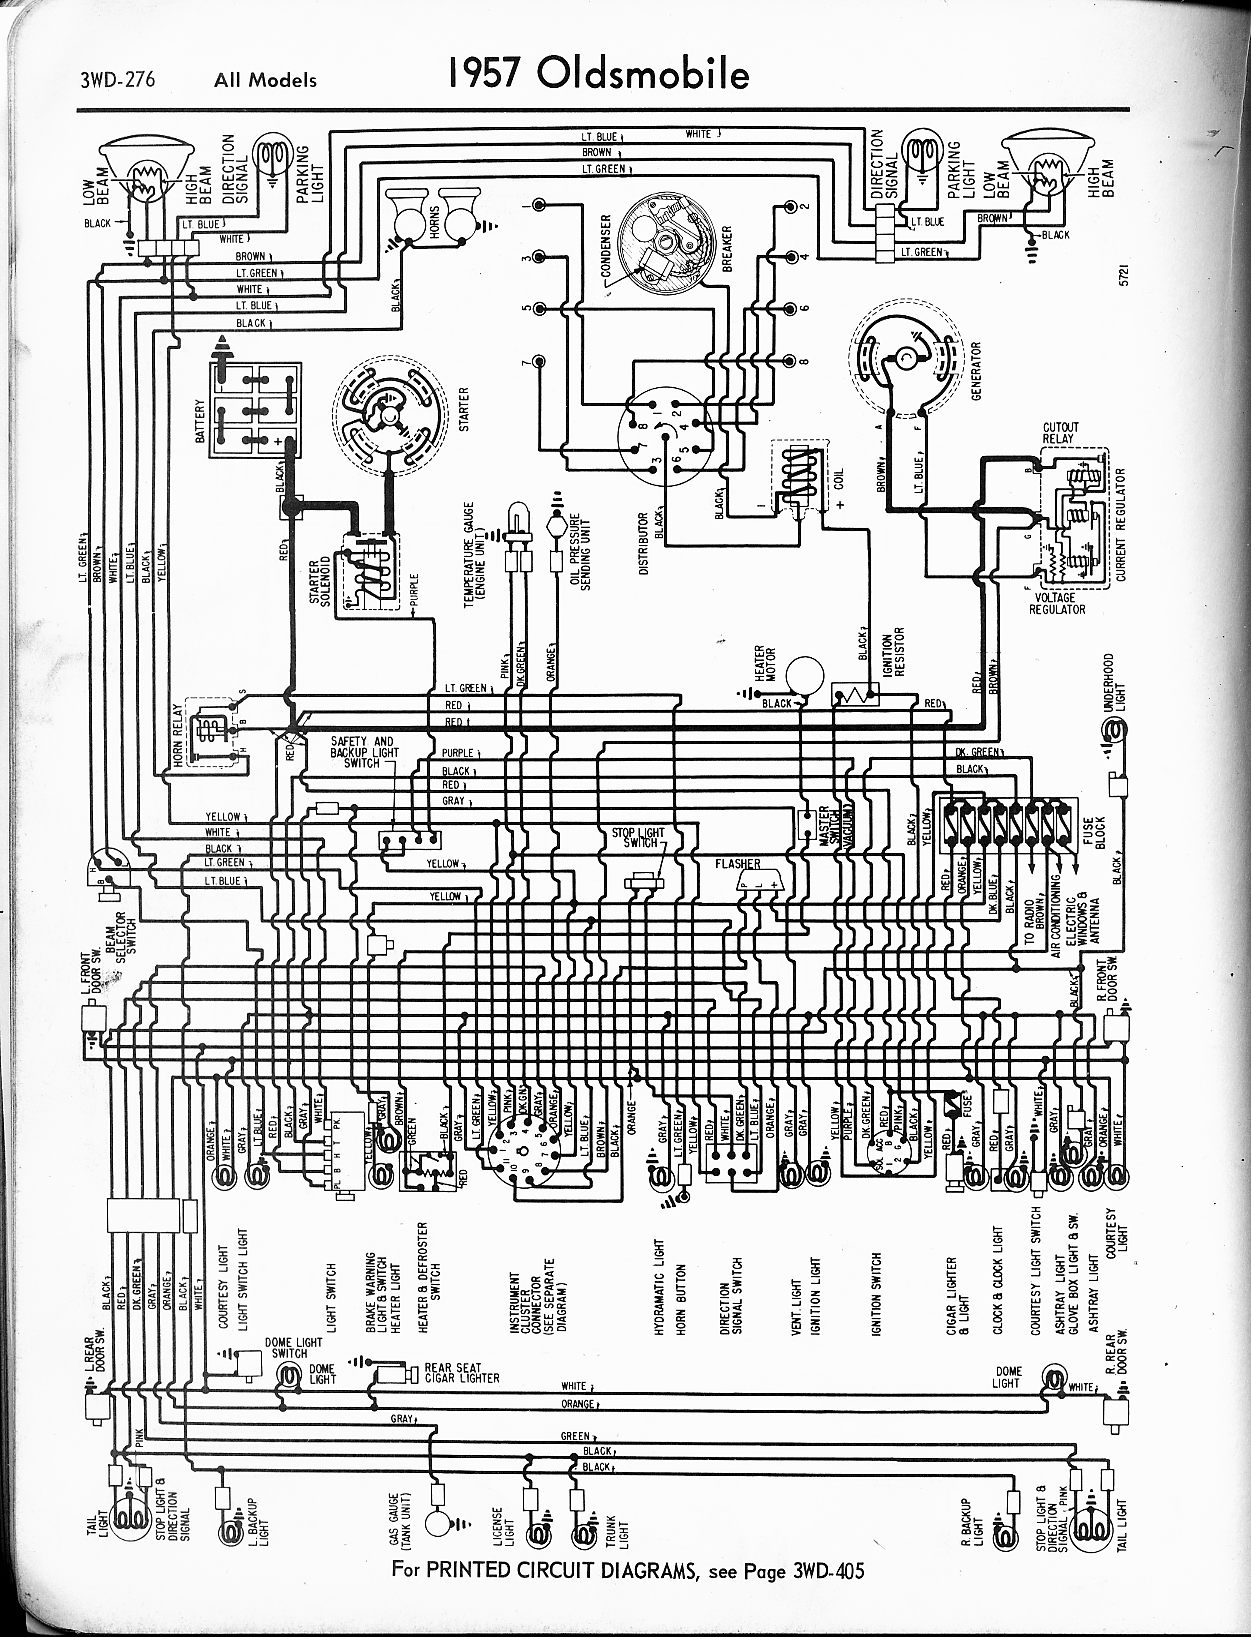 MWire5765 276 oldsmobile wiring diagrams the old car manual project 1957 vw beetle wiring diagram at bayanpartner.co